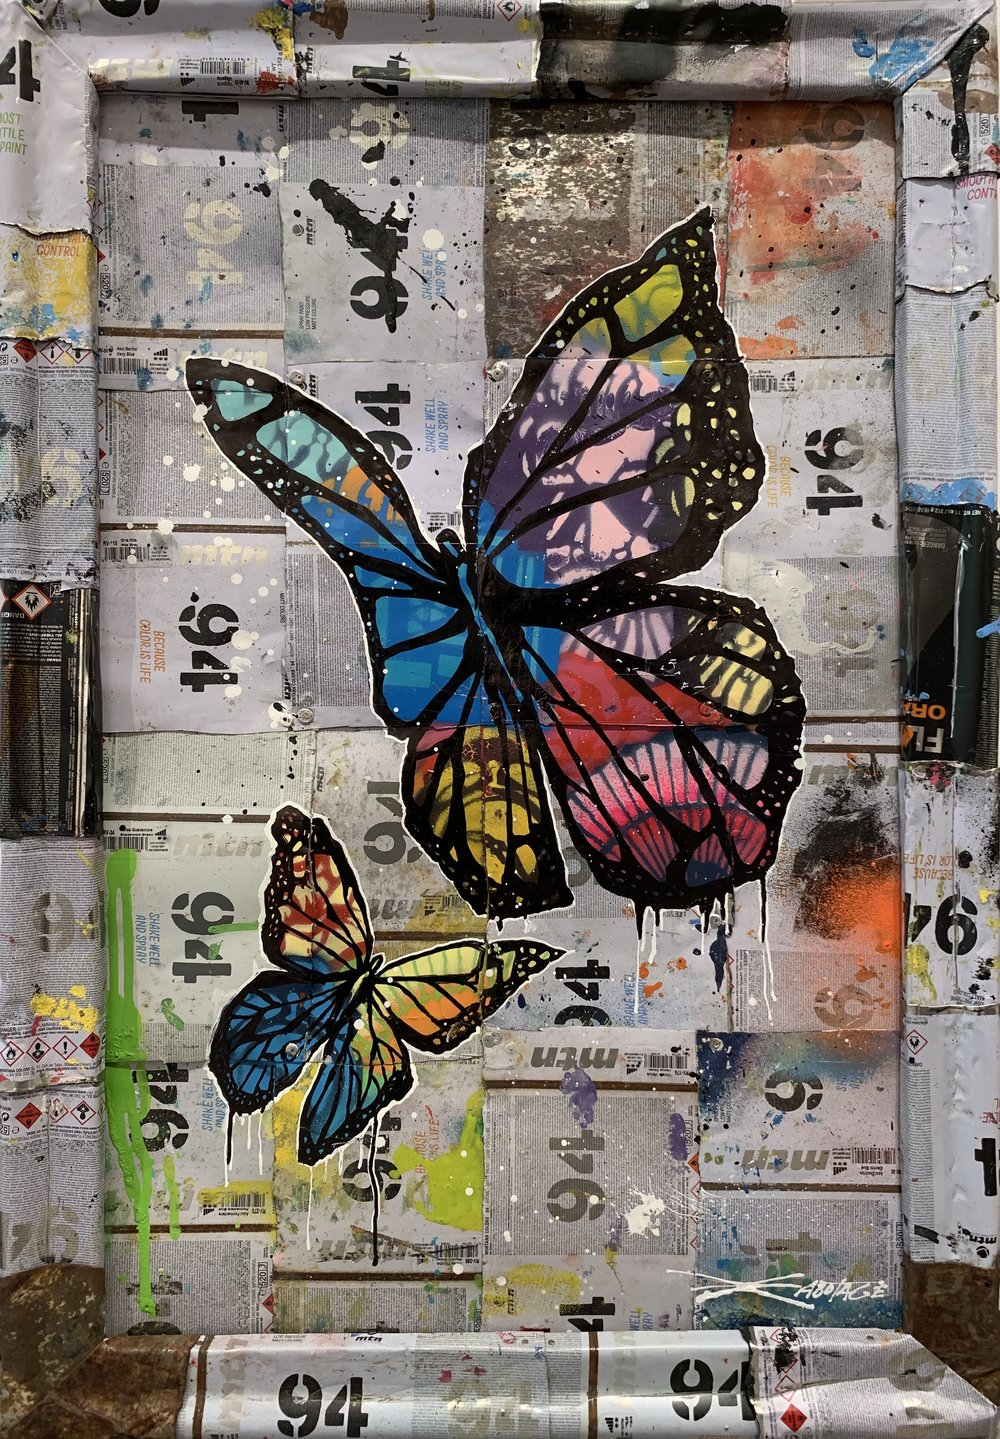 """""""Butterflies"""" Stencil Mixed Media Spray Paint and Graffiti Markers on deconstructed Can Background 78 x 54 cm 2018"""